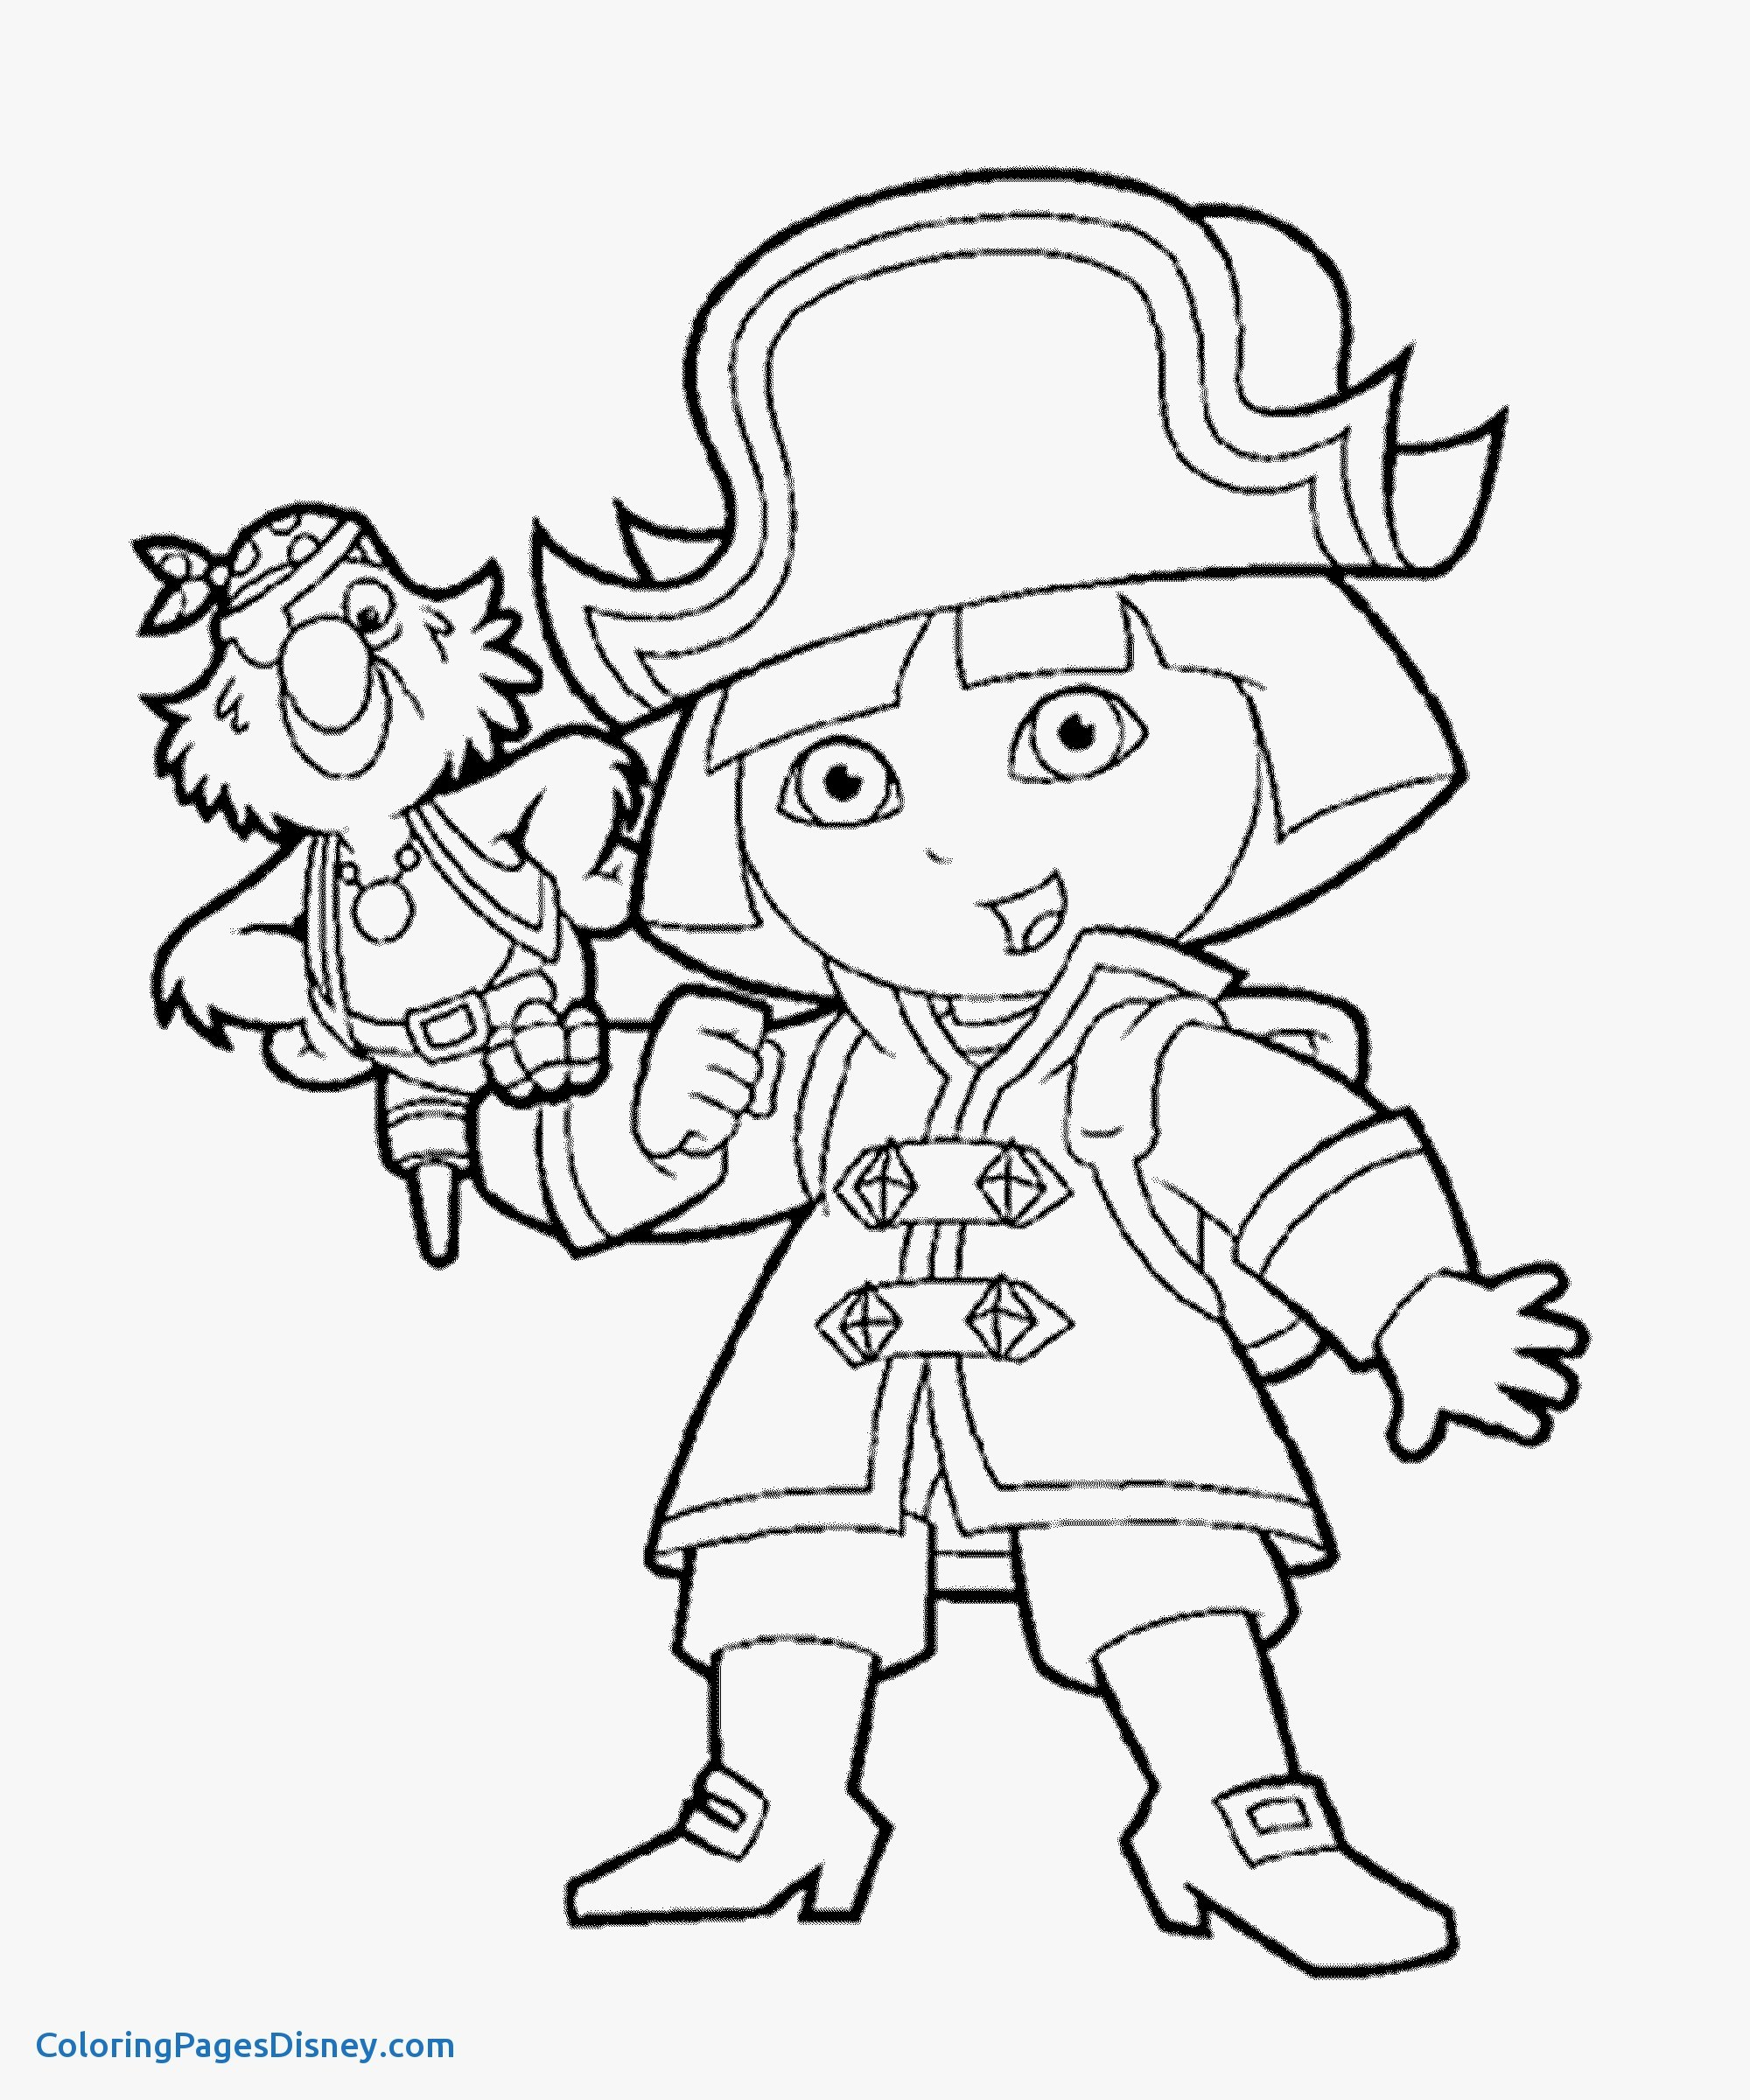 Dora Printable Coloring Pages At Getcolorings